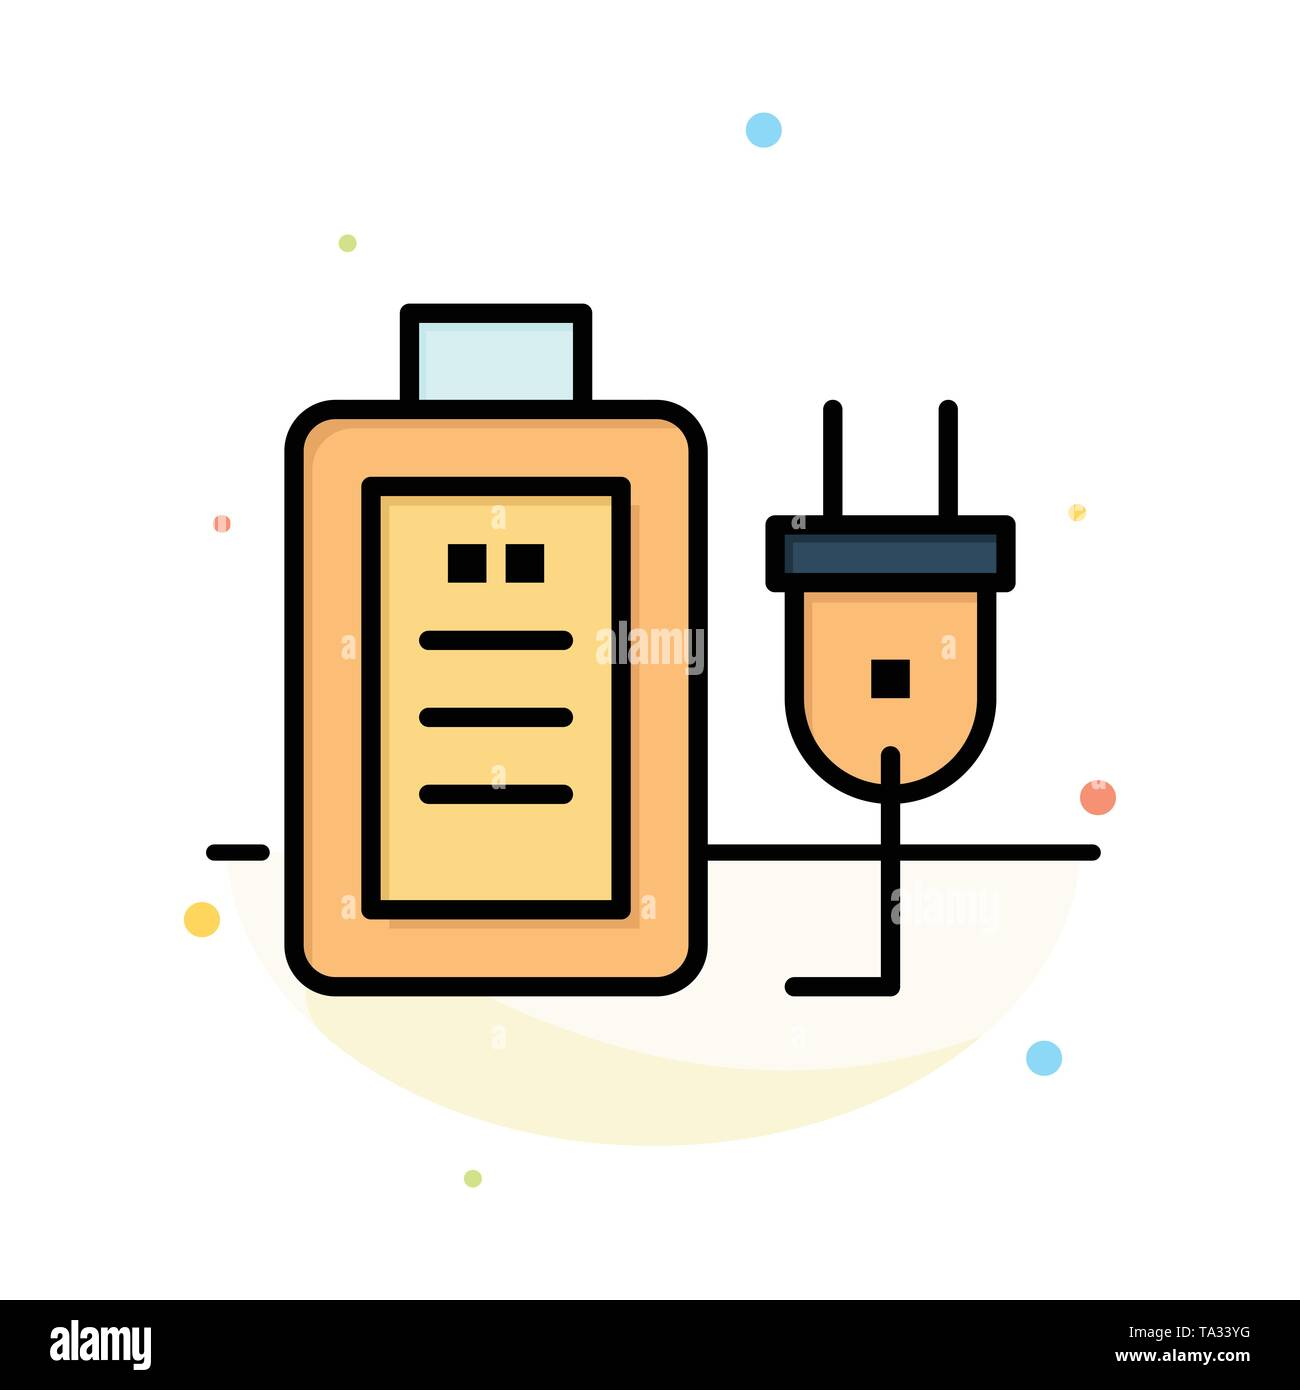 Battery, Charge, Plug, Education Abstract Flat Color Icon Template - Stock Image